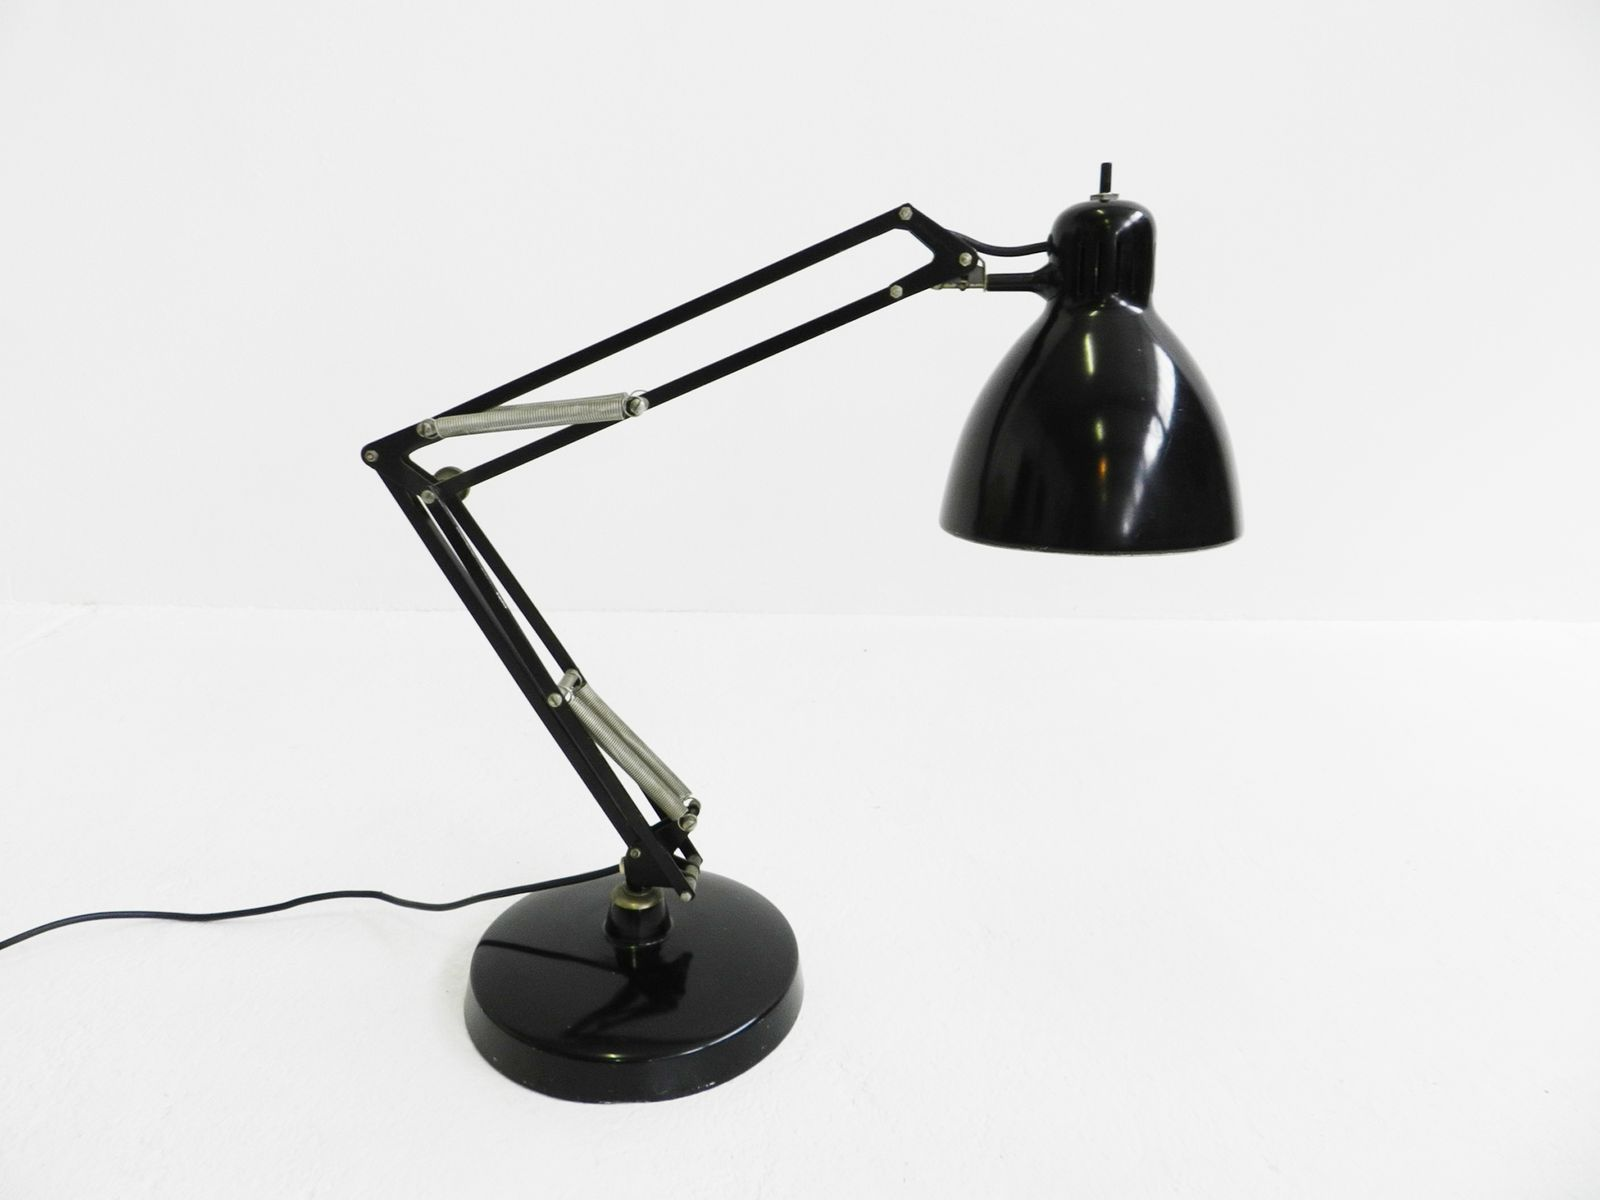 luxo lamps luxo lamps lighting and ceiling fans luxo lamps   - luxo lamps